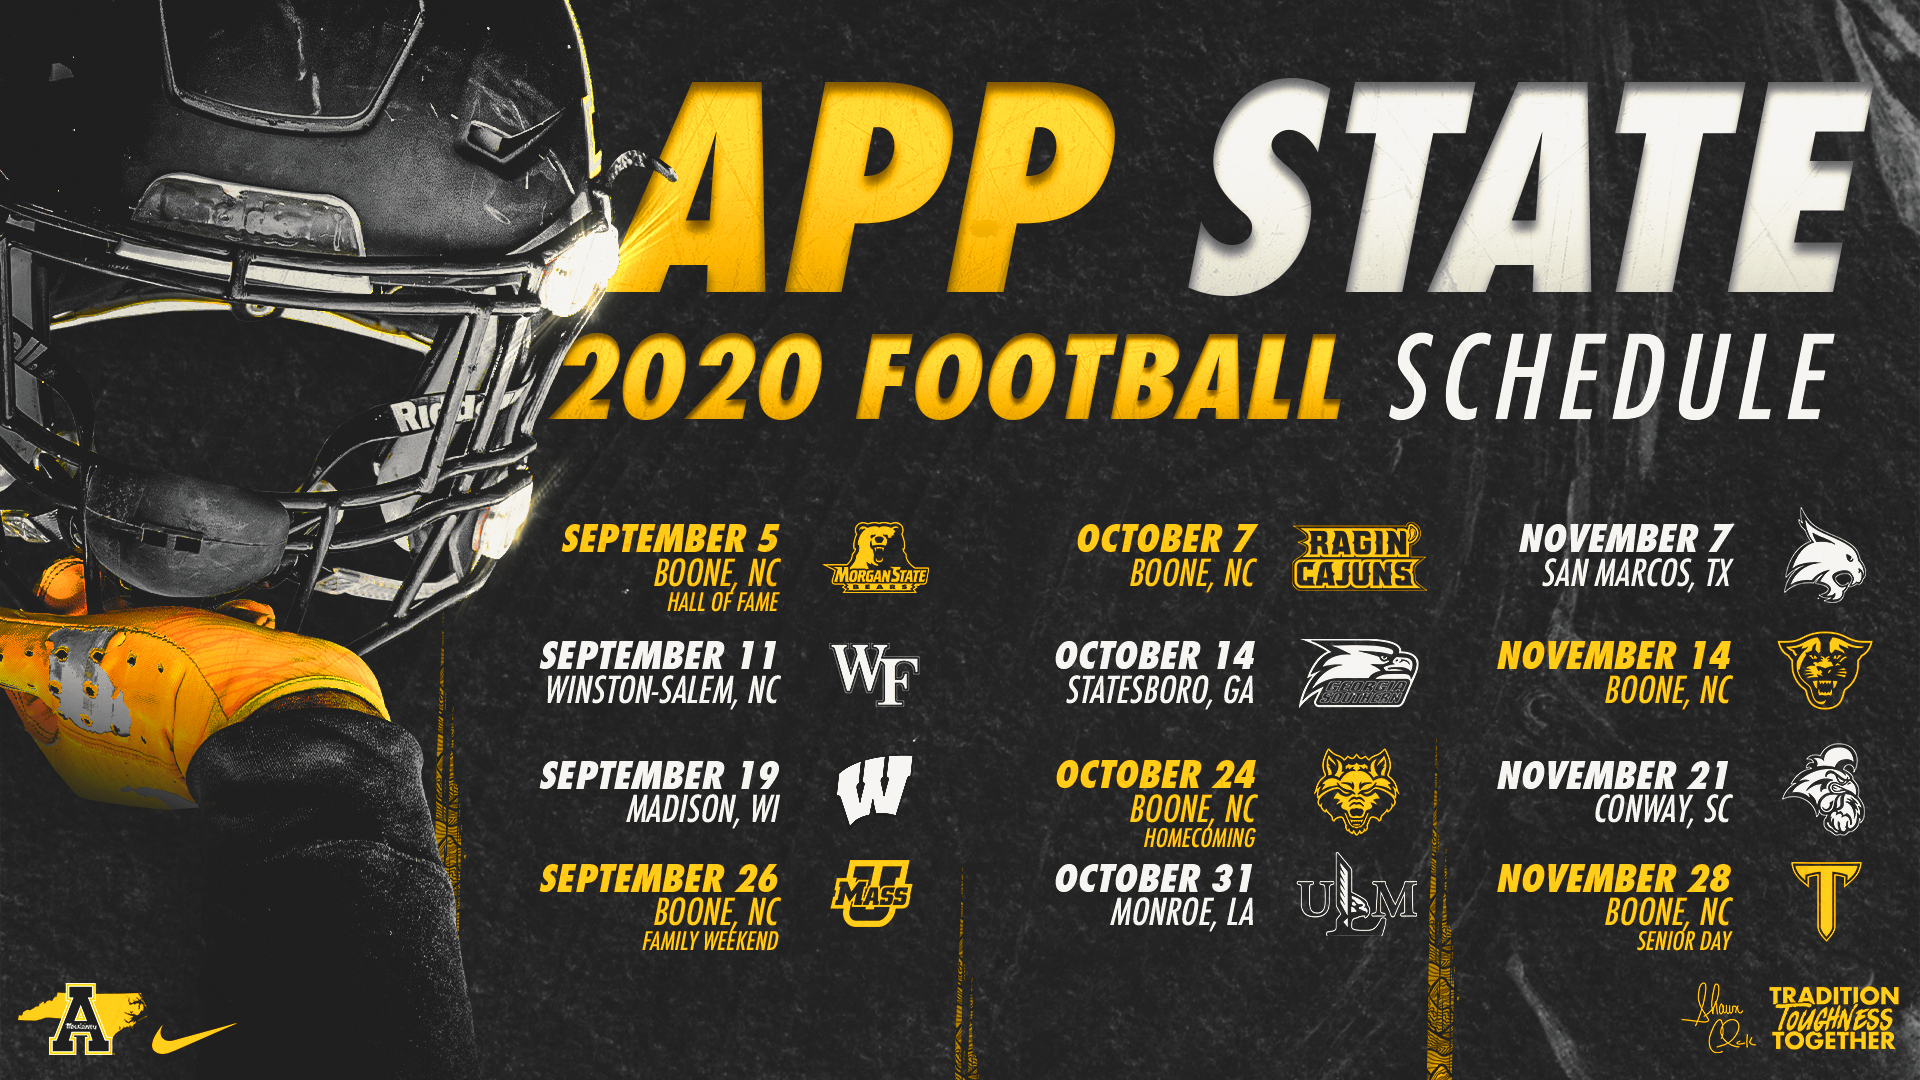 2020 App State Football Schedule Announced App State Athletics